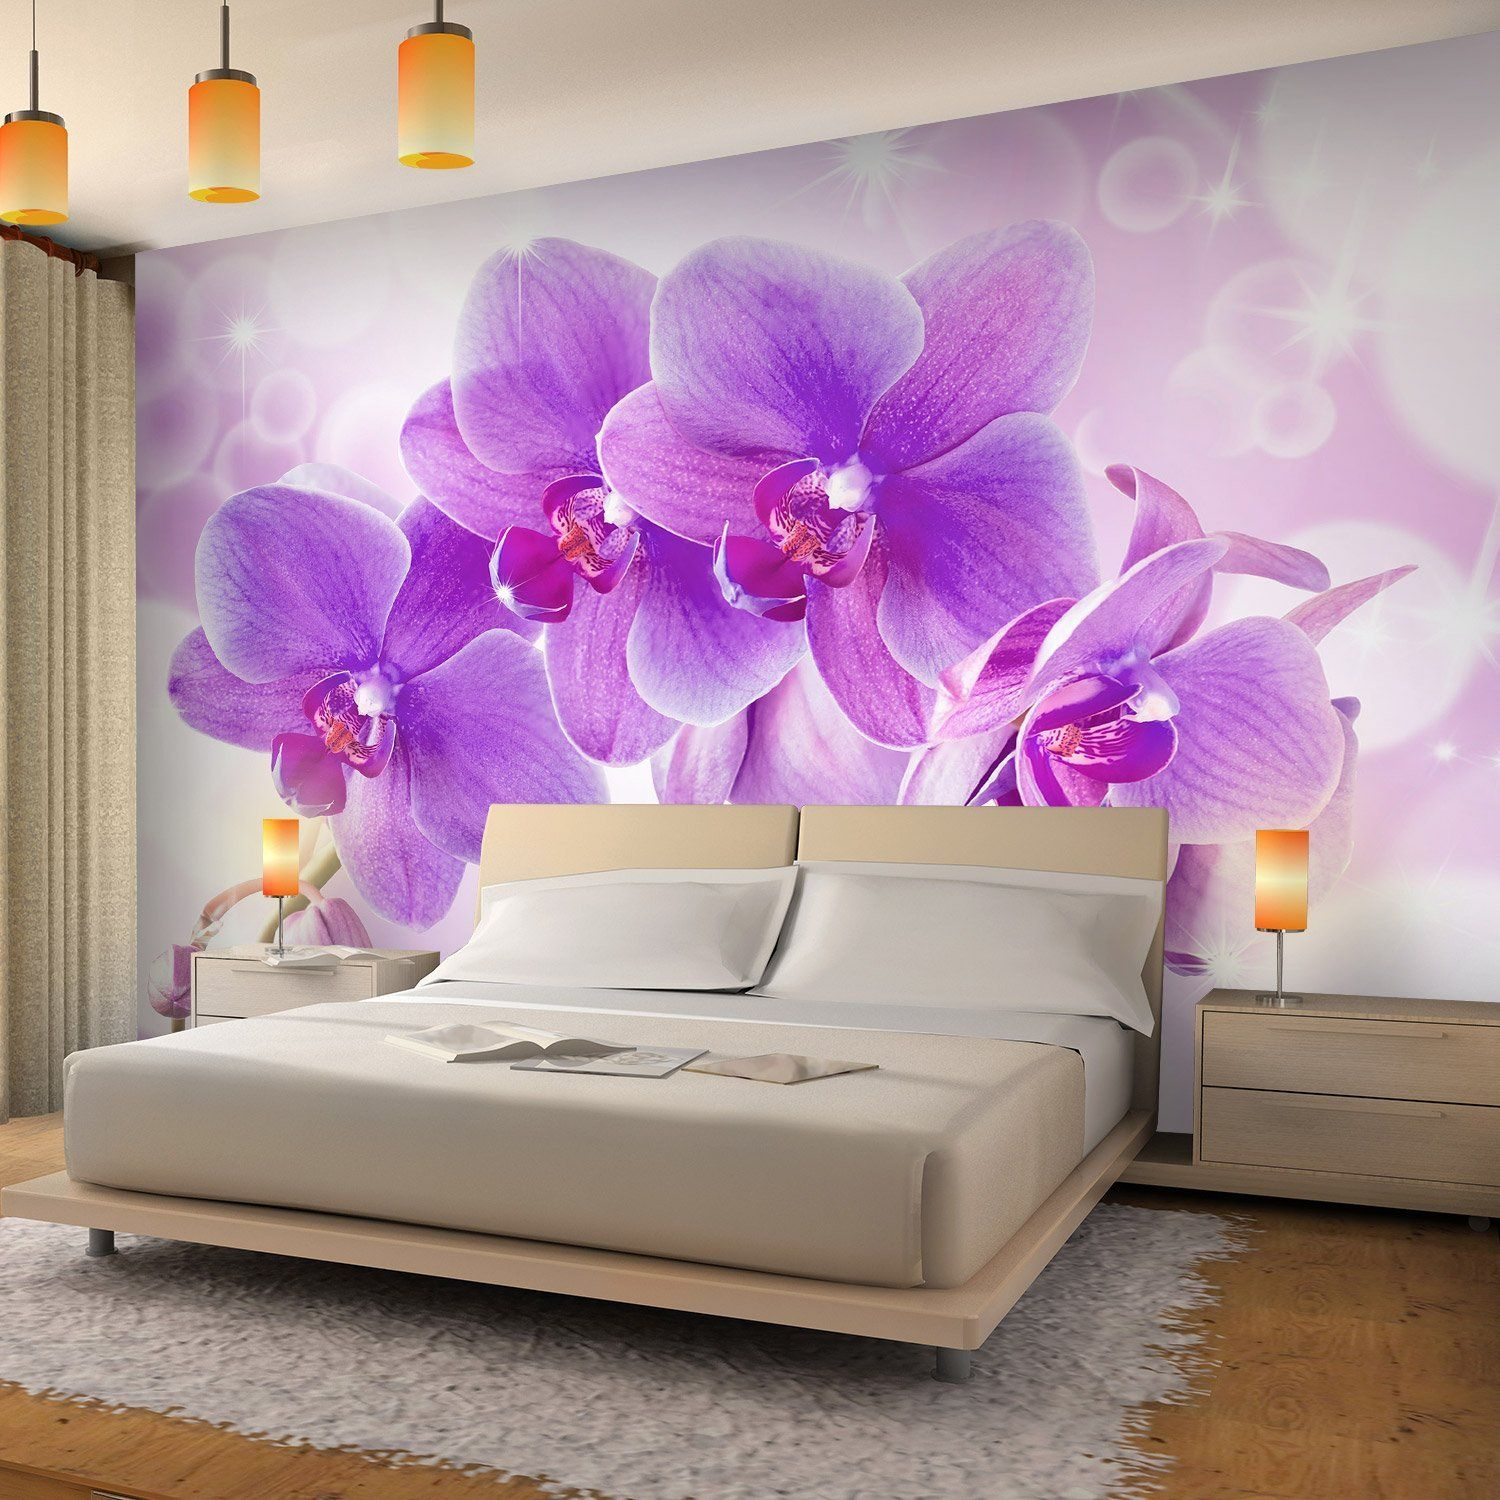 Vlies Fototapete Orchidee 352x250 Cm 9012011b Runa Tapete Amazon De Küche Haushalt Wallpaper Living Room 3d Wallpaper Living Room Photo Mural Wall